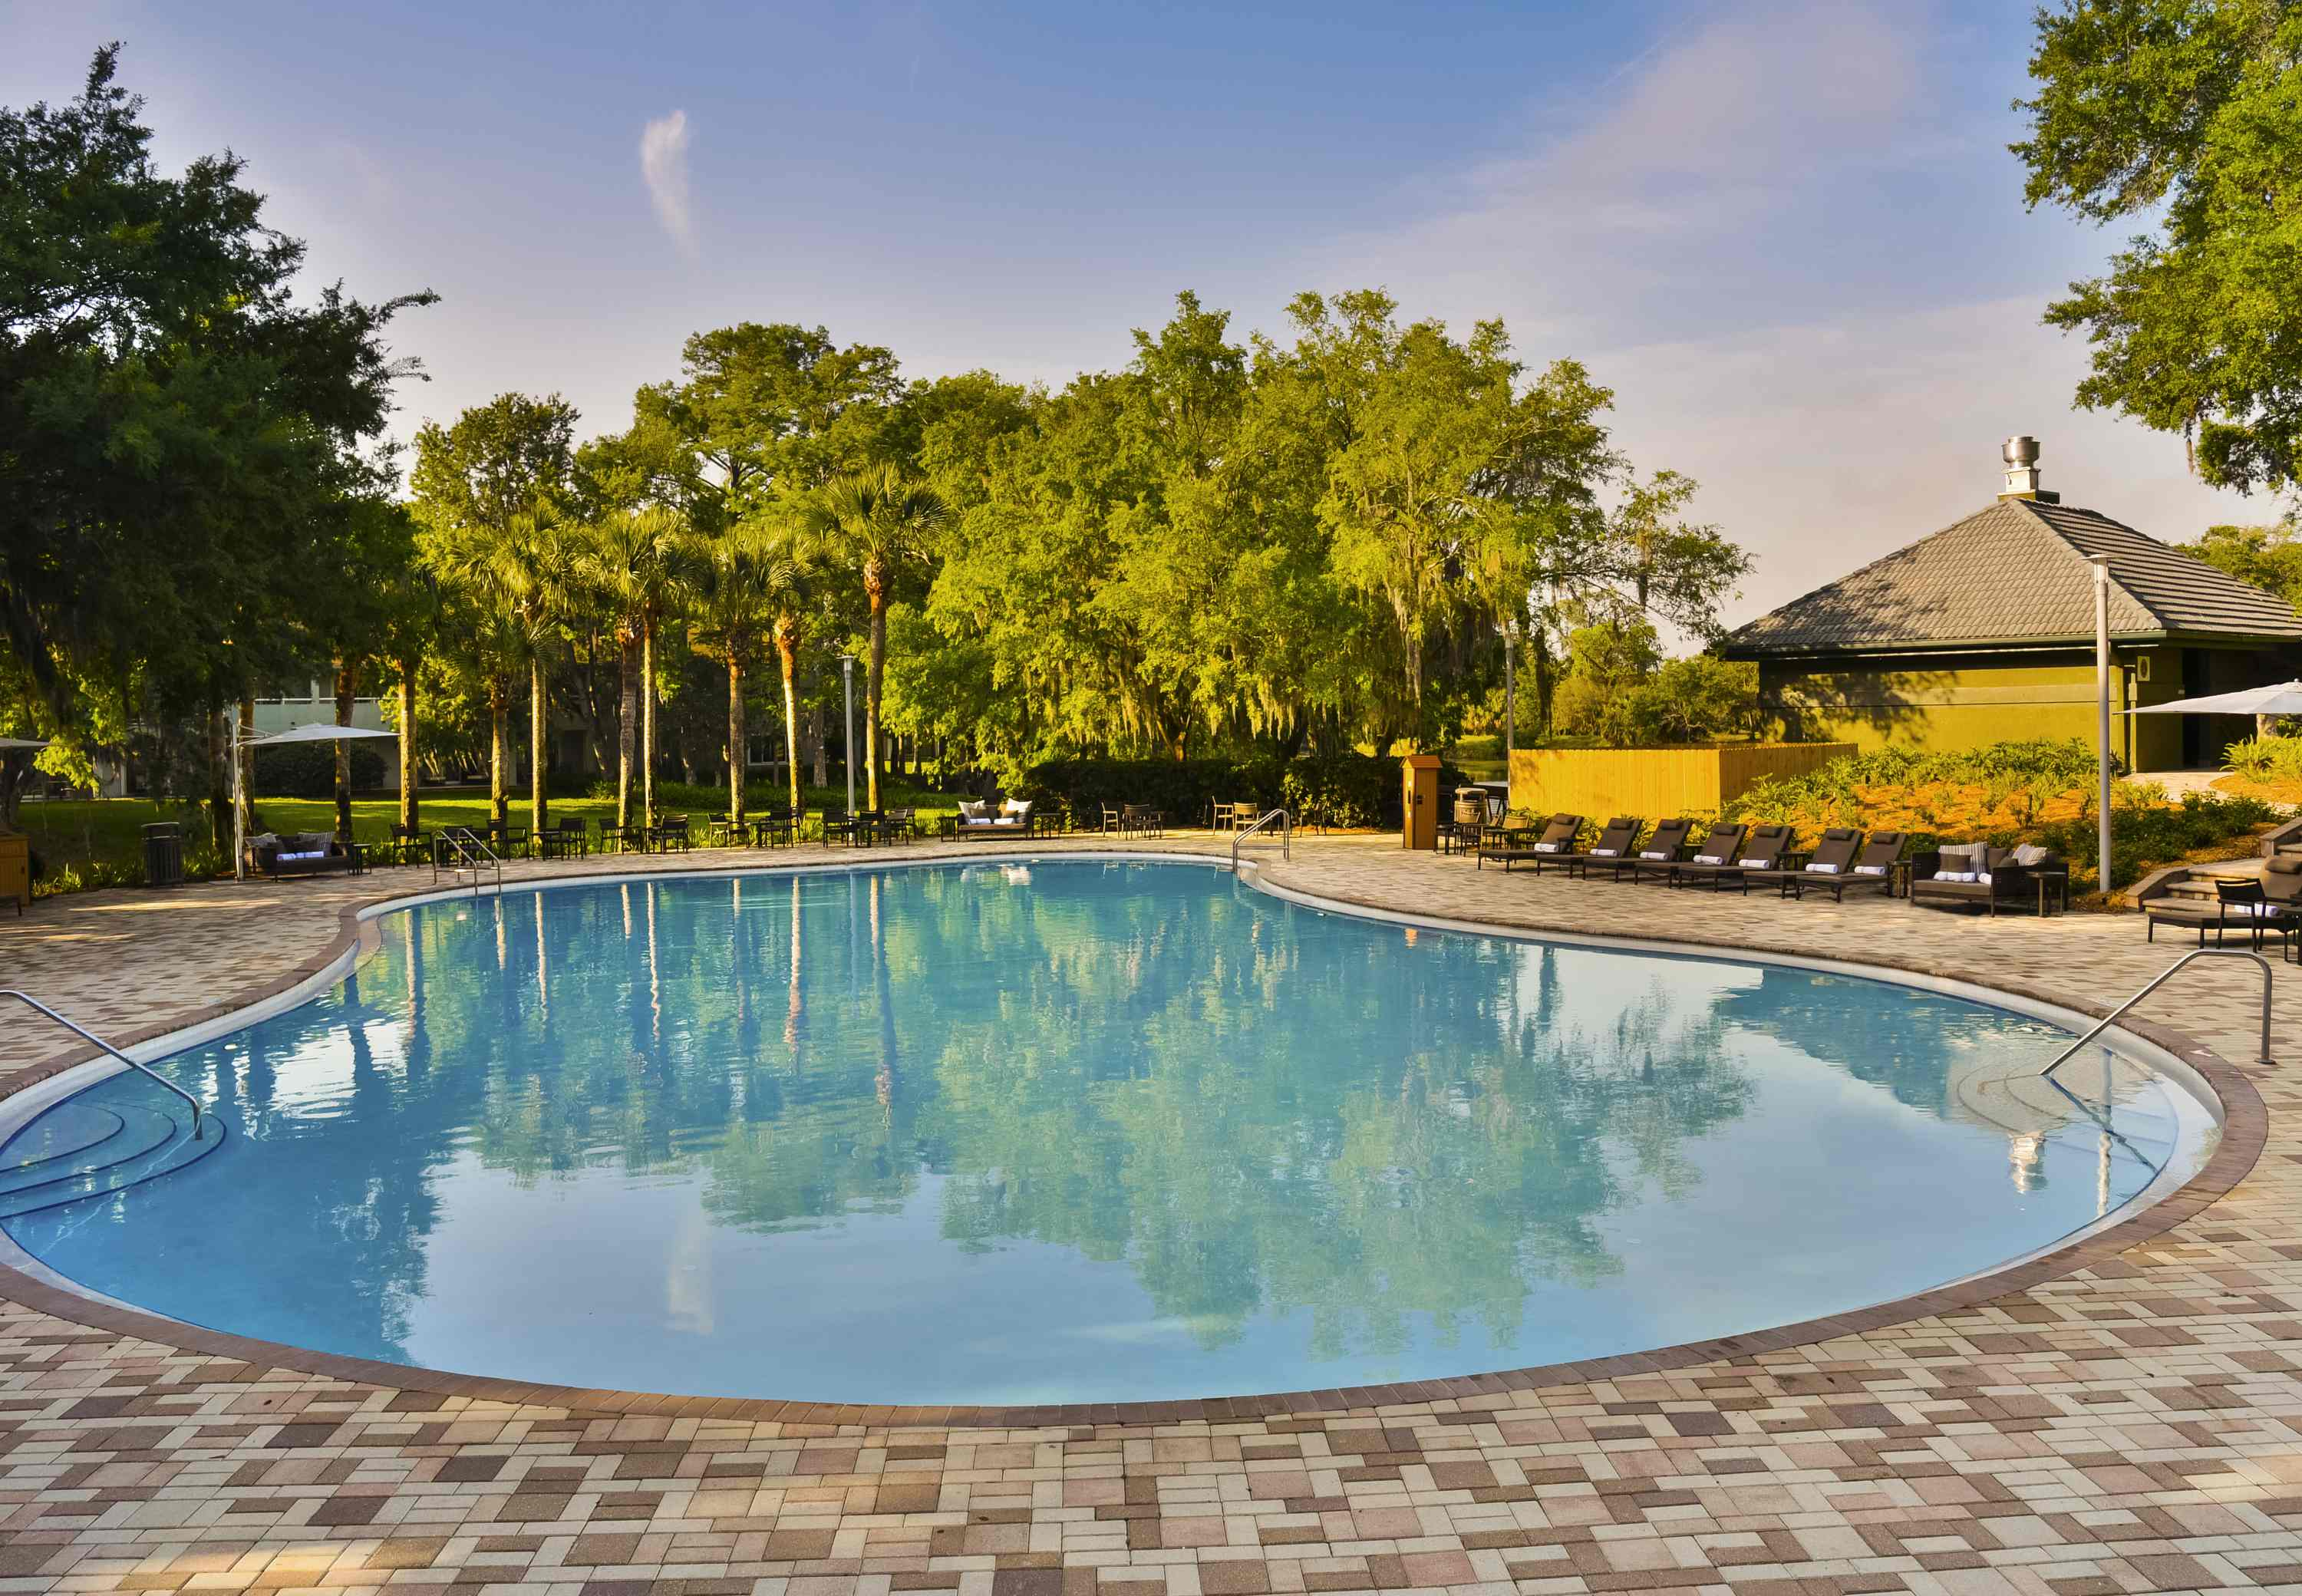 Sawgrass Marriott Golf Resort  Spa Coupons near me in